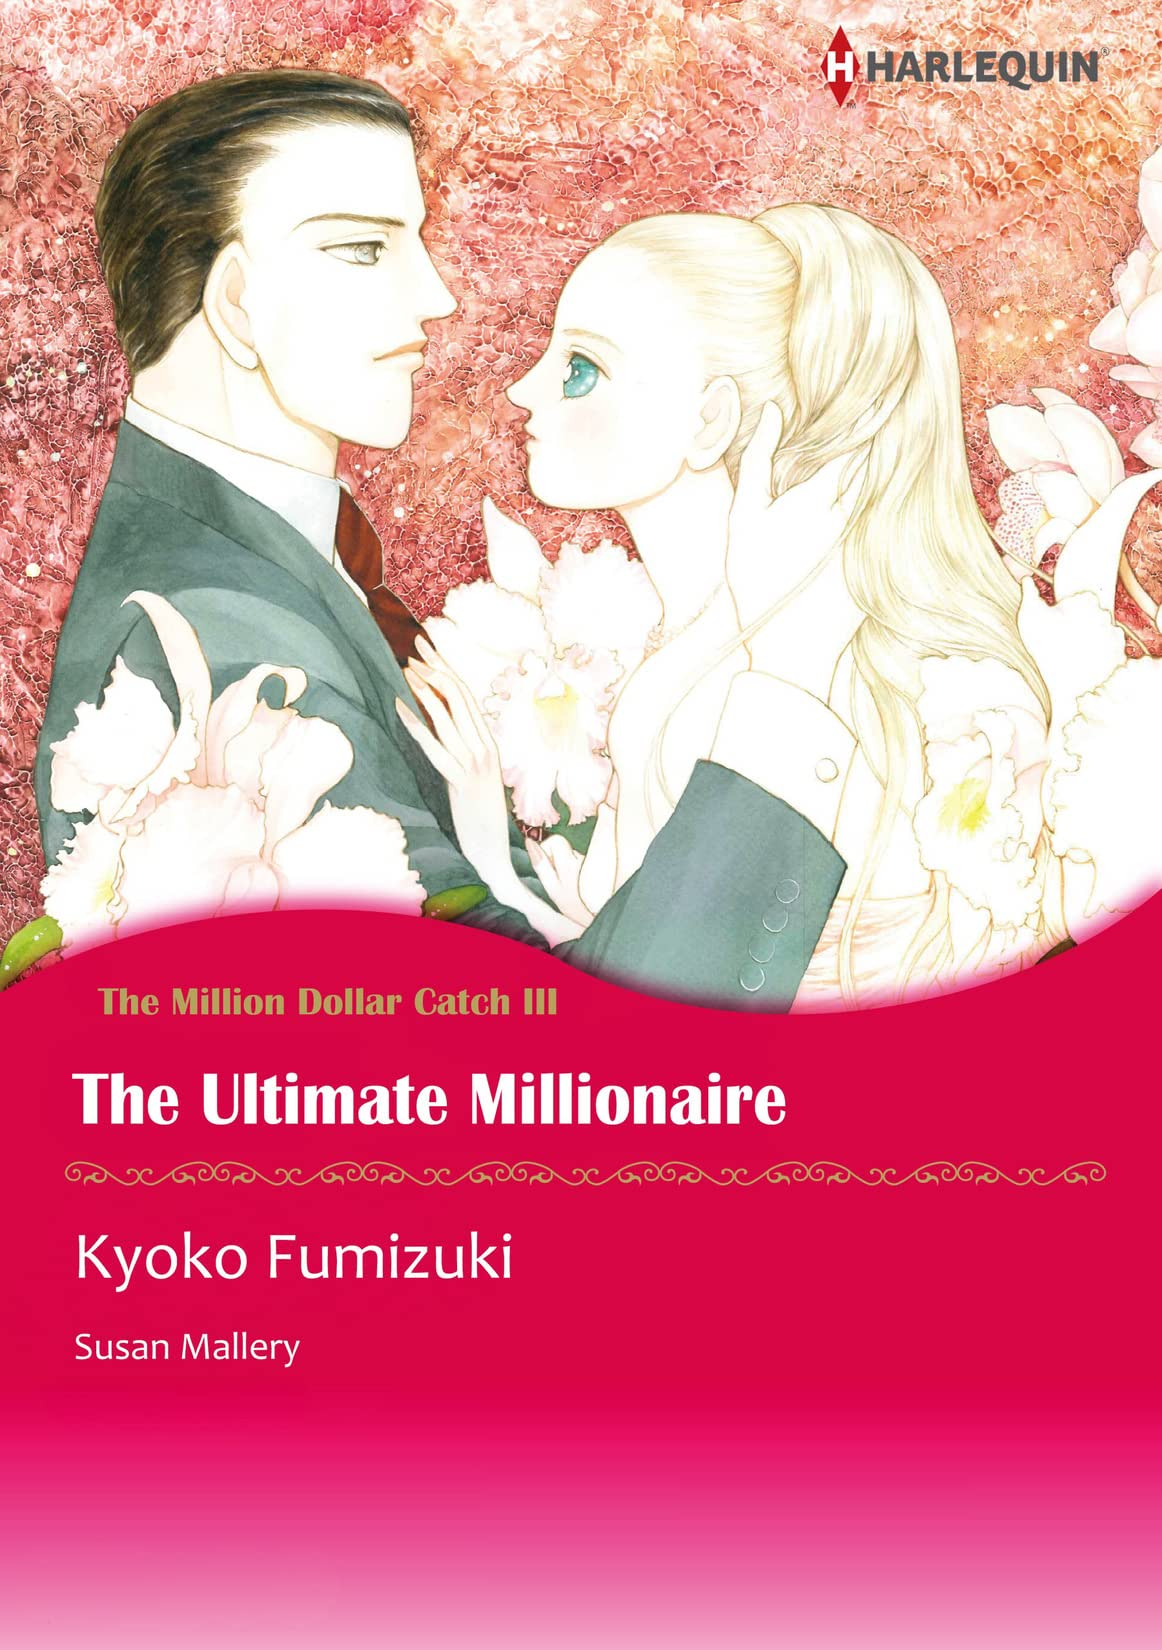 The Ultimate Millionaire